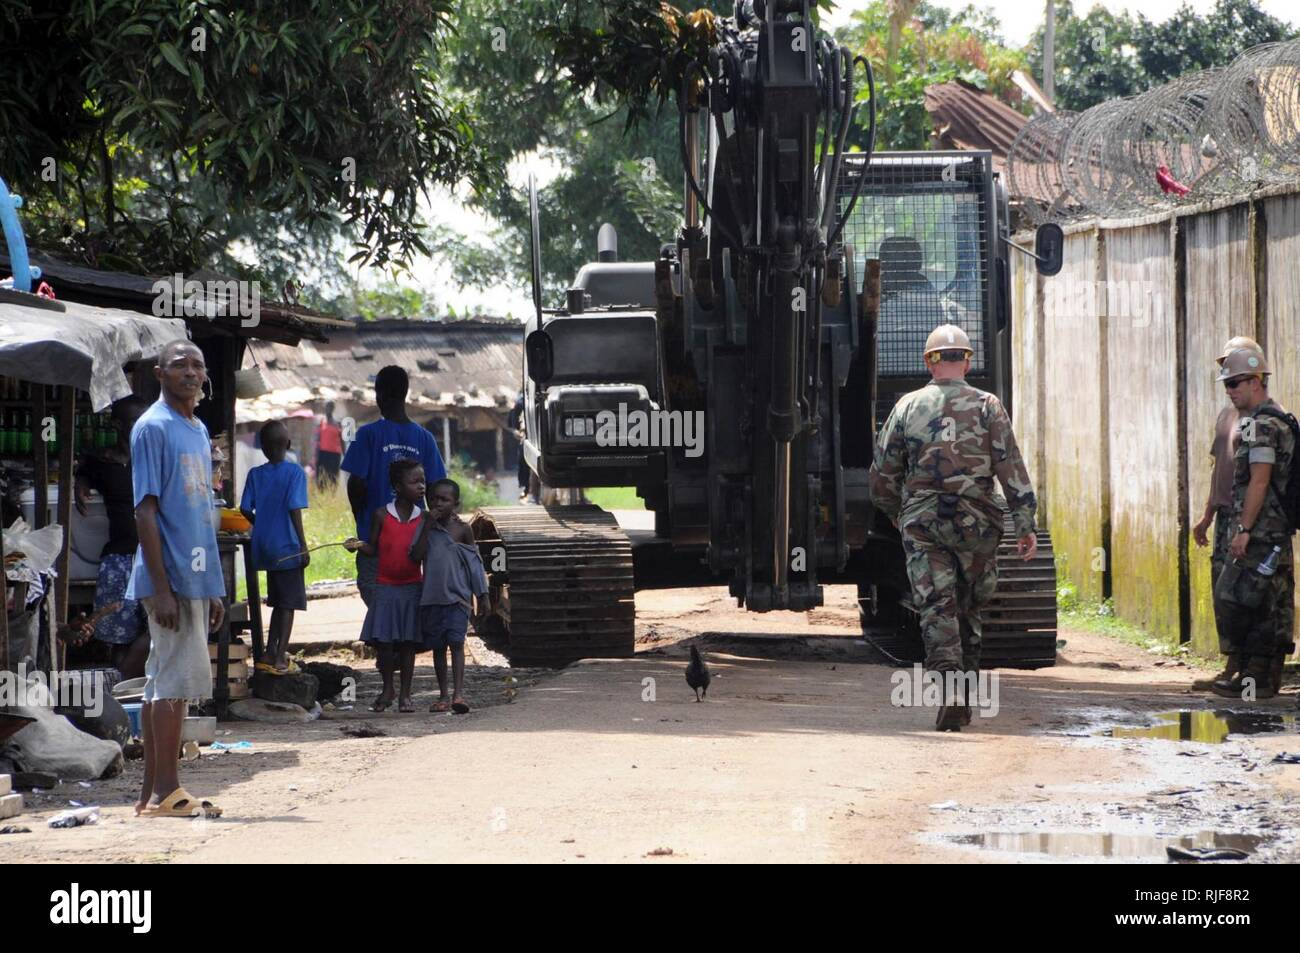 Personnel and equipment from Naval Mobile Construction Battalion 3, based out of Rota, Spain, makes its way through a local village after coming ashore in Monrovia, Liberia, Oct. 17.  The personnel and equipment were transported to the shore by amphibious landing craft attached to the Dutch Africa Partnership Station platform HNLMS Johan de Witt (L 801). The Seabees are in Liberia to rebuild the Liberian Coast Guard base that was destroyed  by factional groups in the country?s 2005 civil war.  Johan de Witt, a Royal Dutch Naval vessel, is the first European-led APS platform and is augmented by - Stock Image